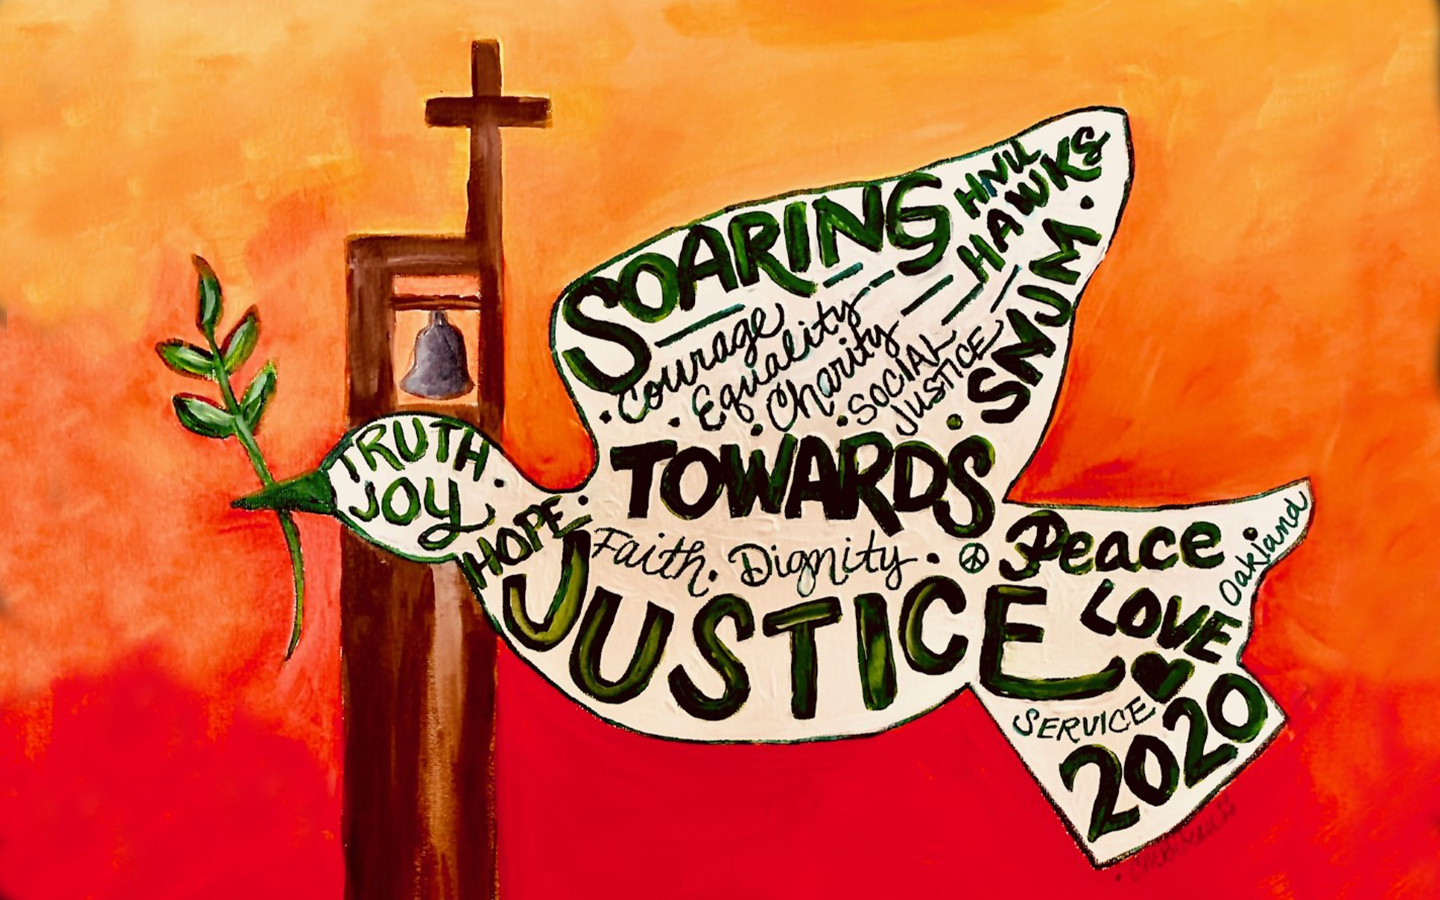 Painting of dove bird with soaring towards justice message